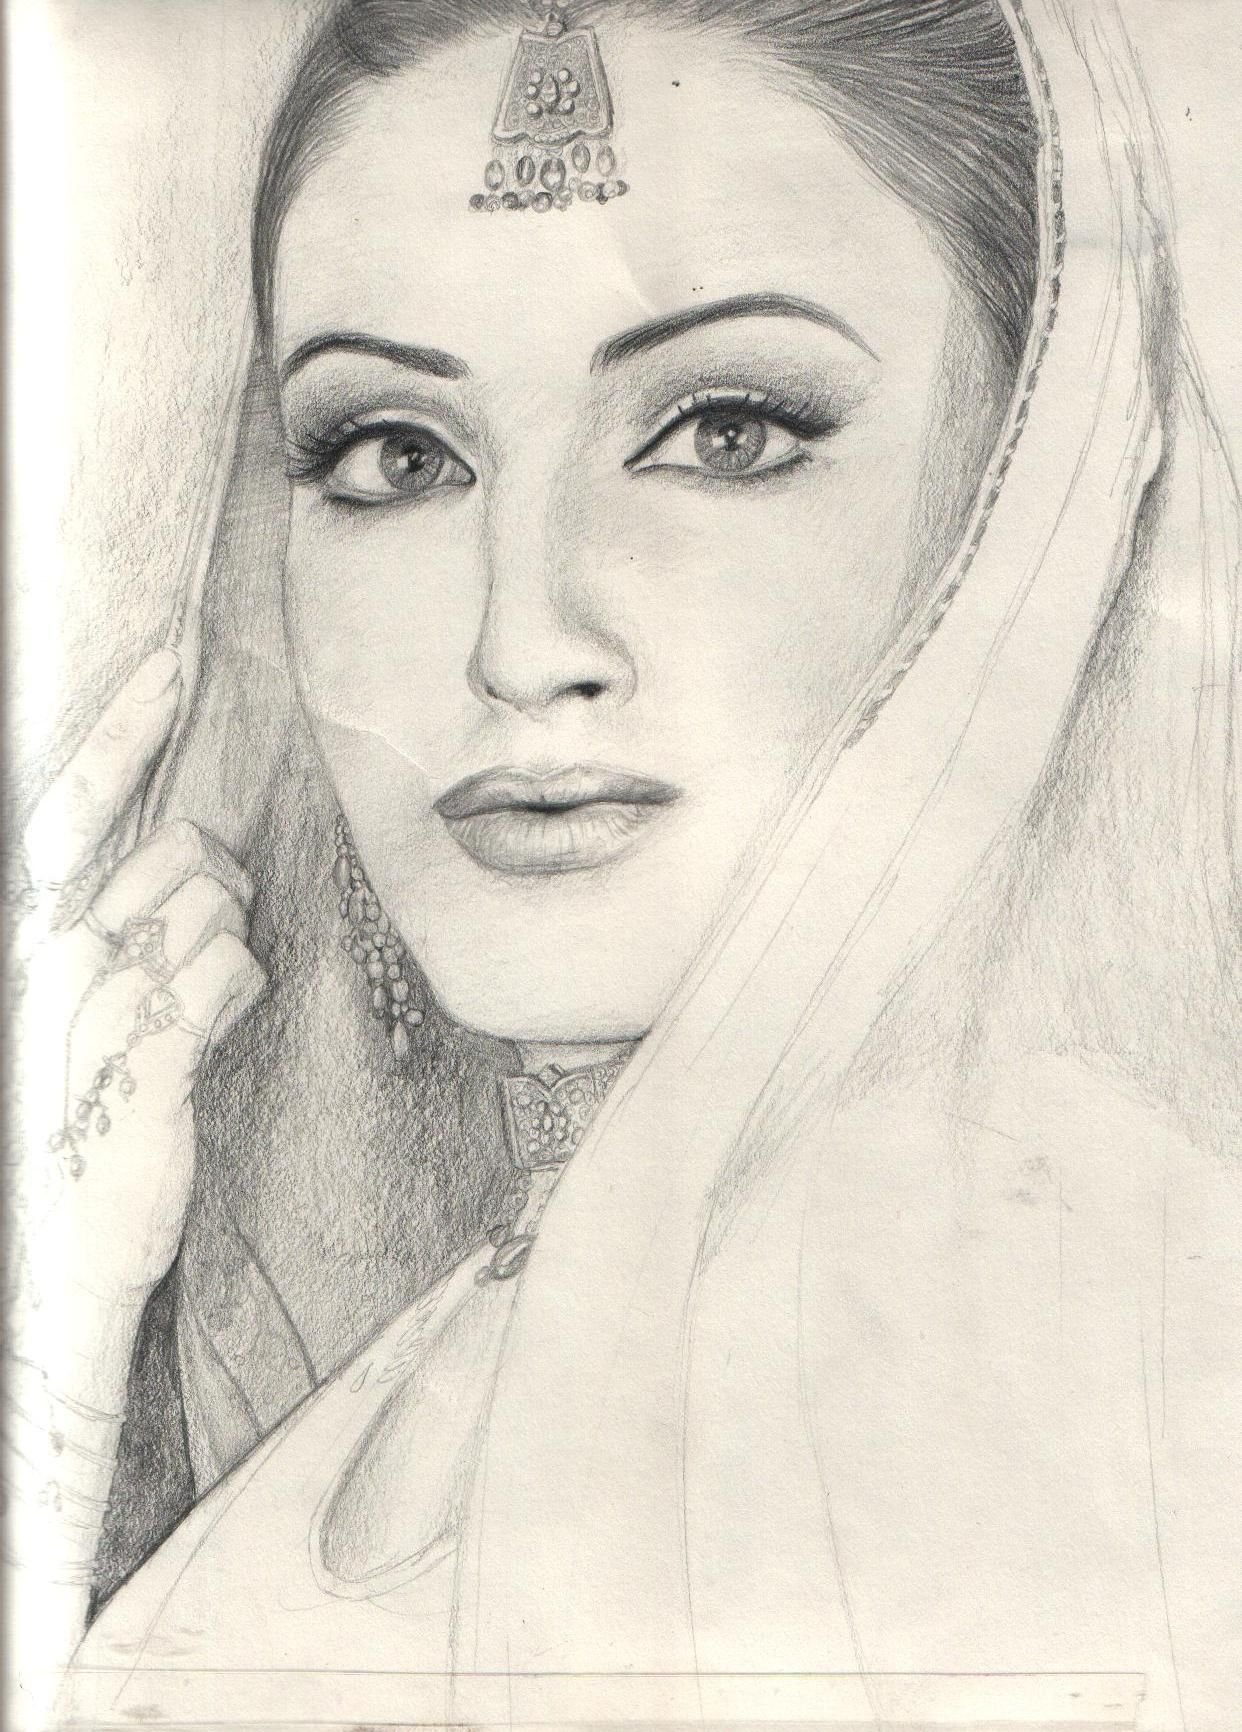 Pencil drawing of beautiful traditional girl pencil sketch